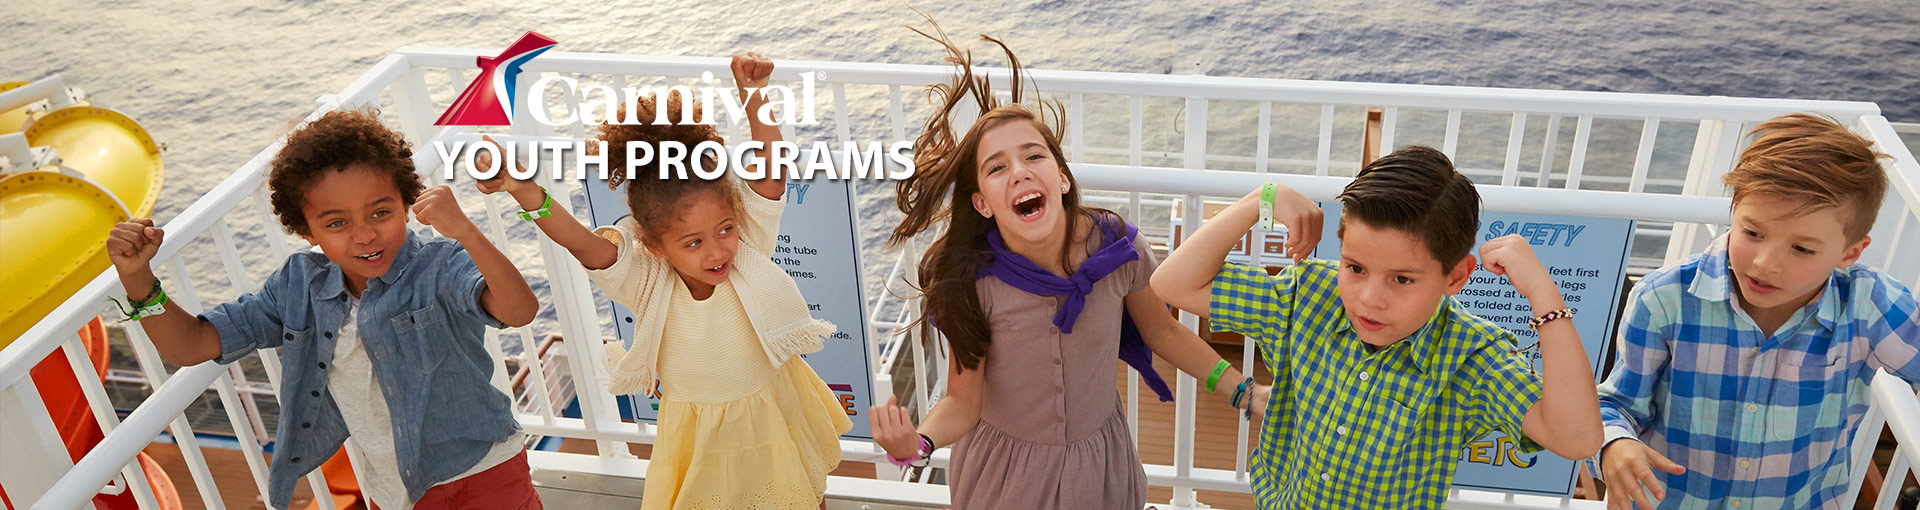 Carnival Cruise Line Youth Programs